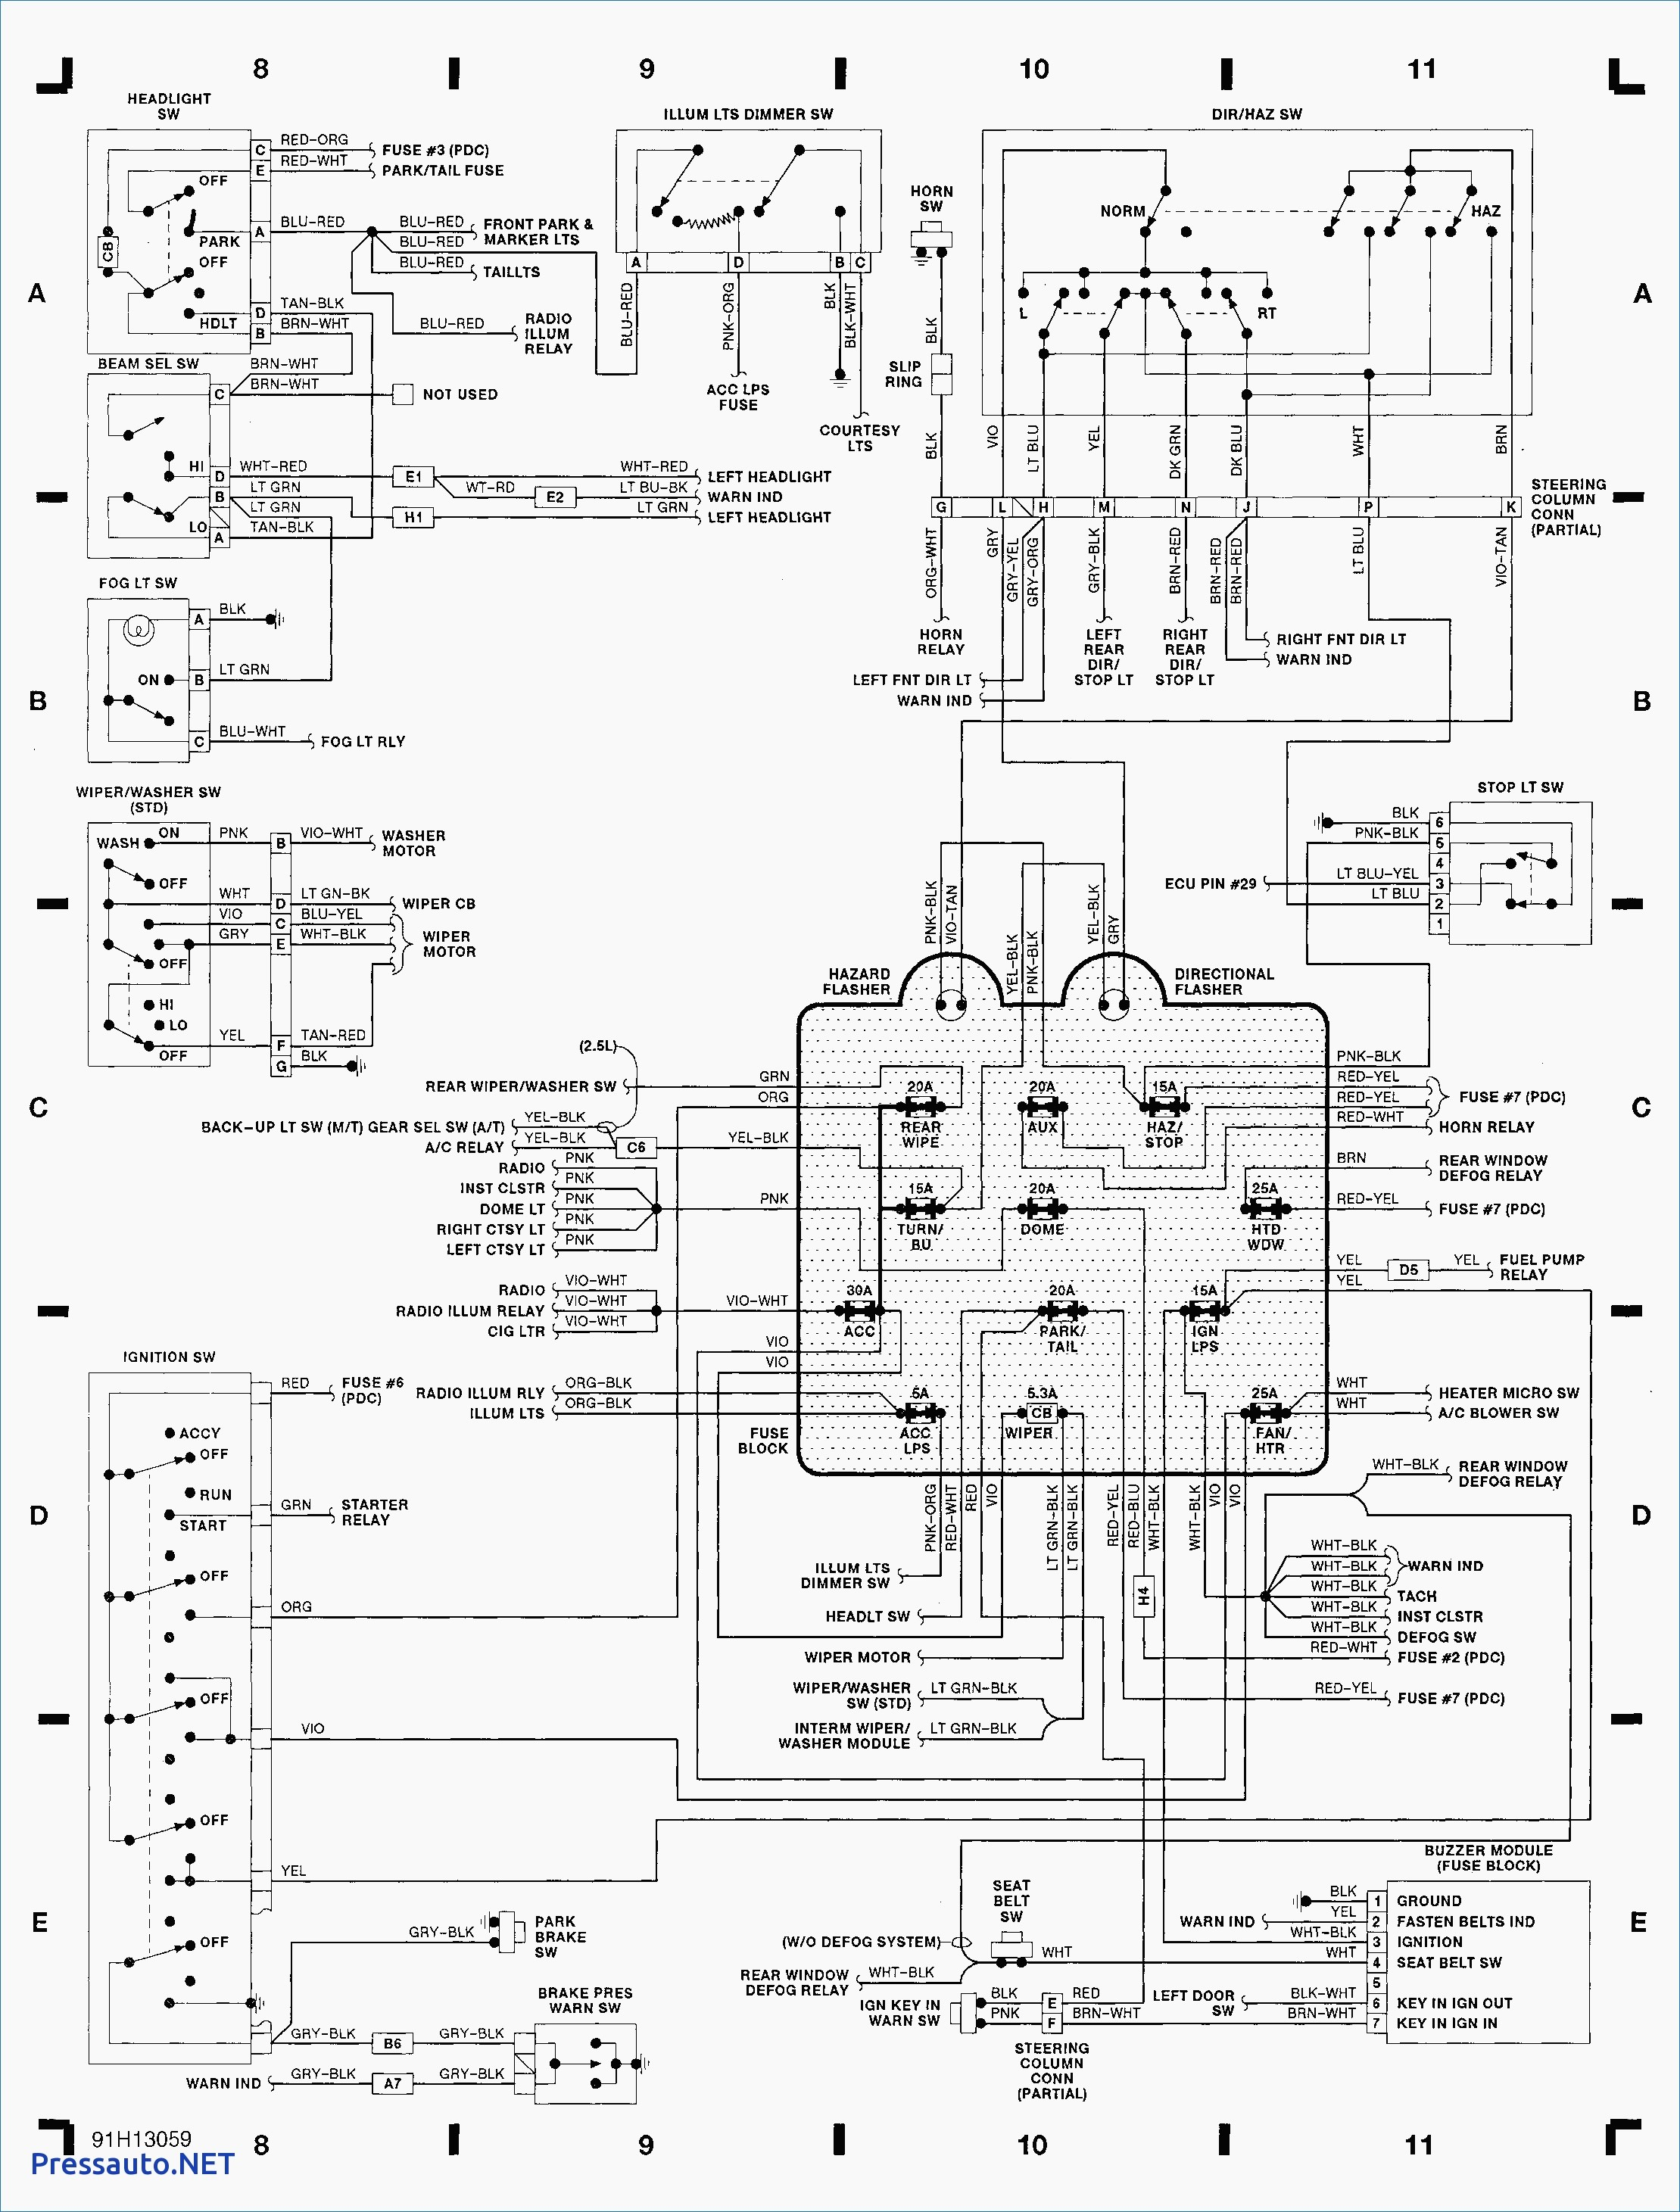 DIAGRAM] 1992 Jeep Wrangler Wiring Diagram Wiring Diagram FULL Version HD  Quality Wiring Diagram - MASE-DIAGRAM.DISCOCLASSIC.ITDiagram Database - discoclassic.it